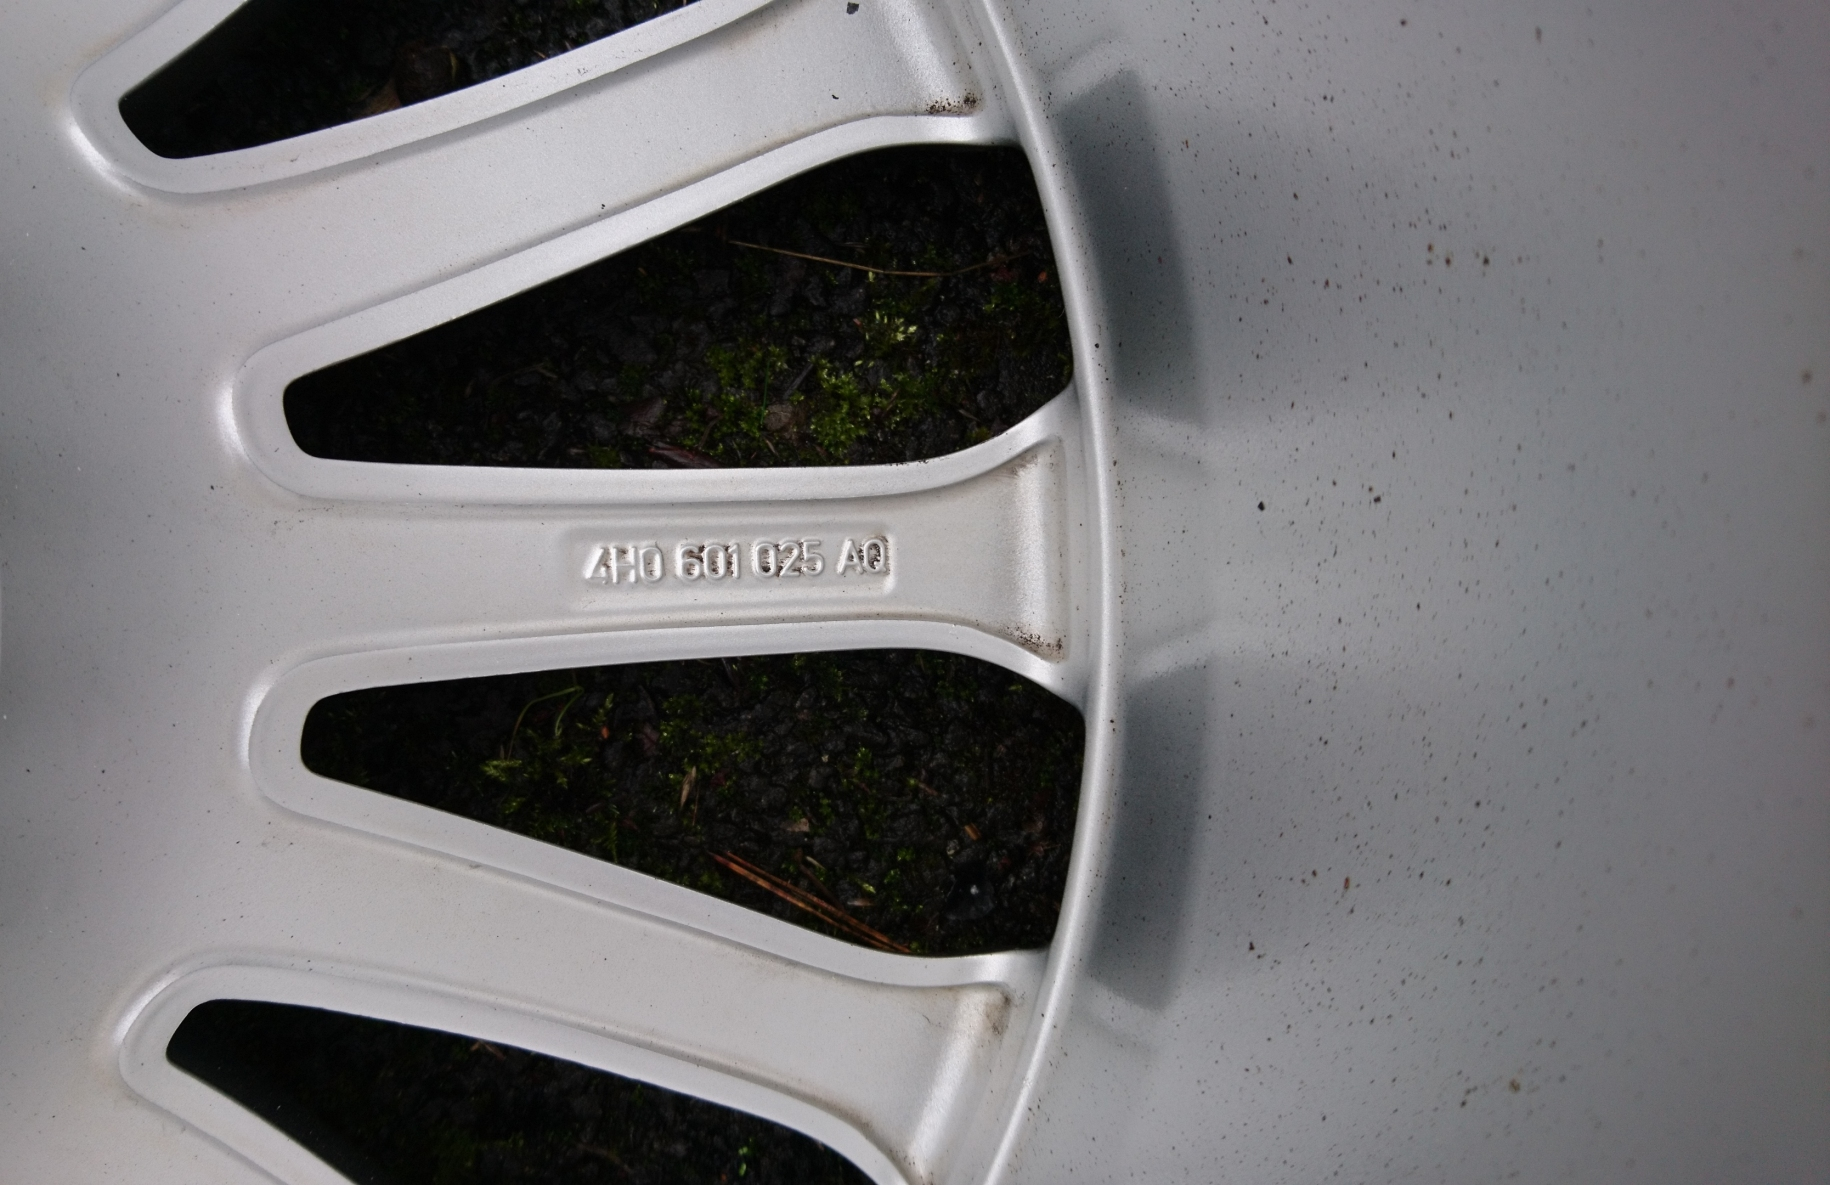 17-0206 A8 wheels for ad#4 resized.jpg